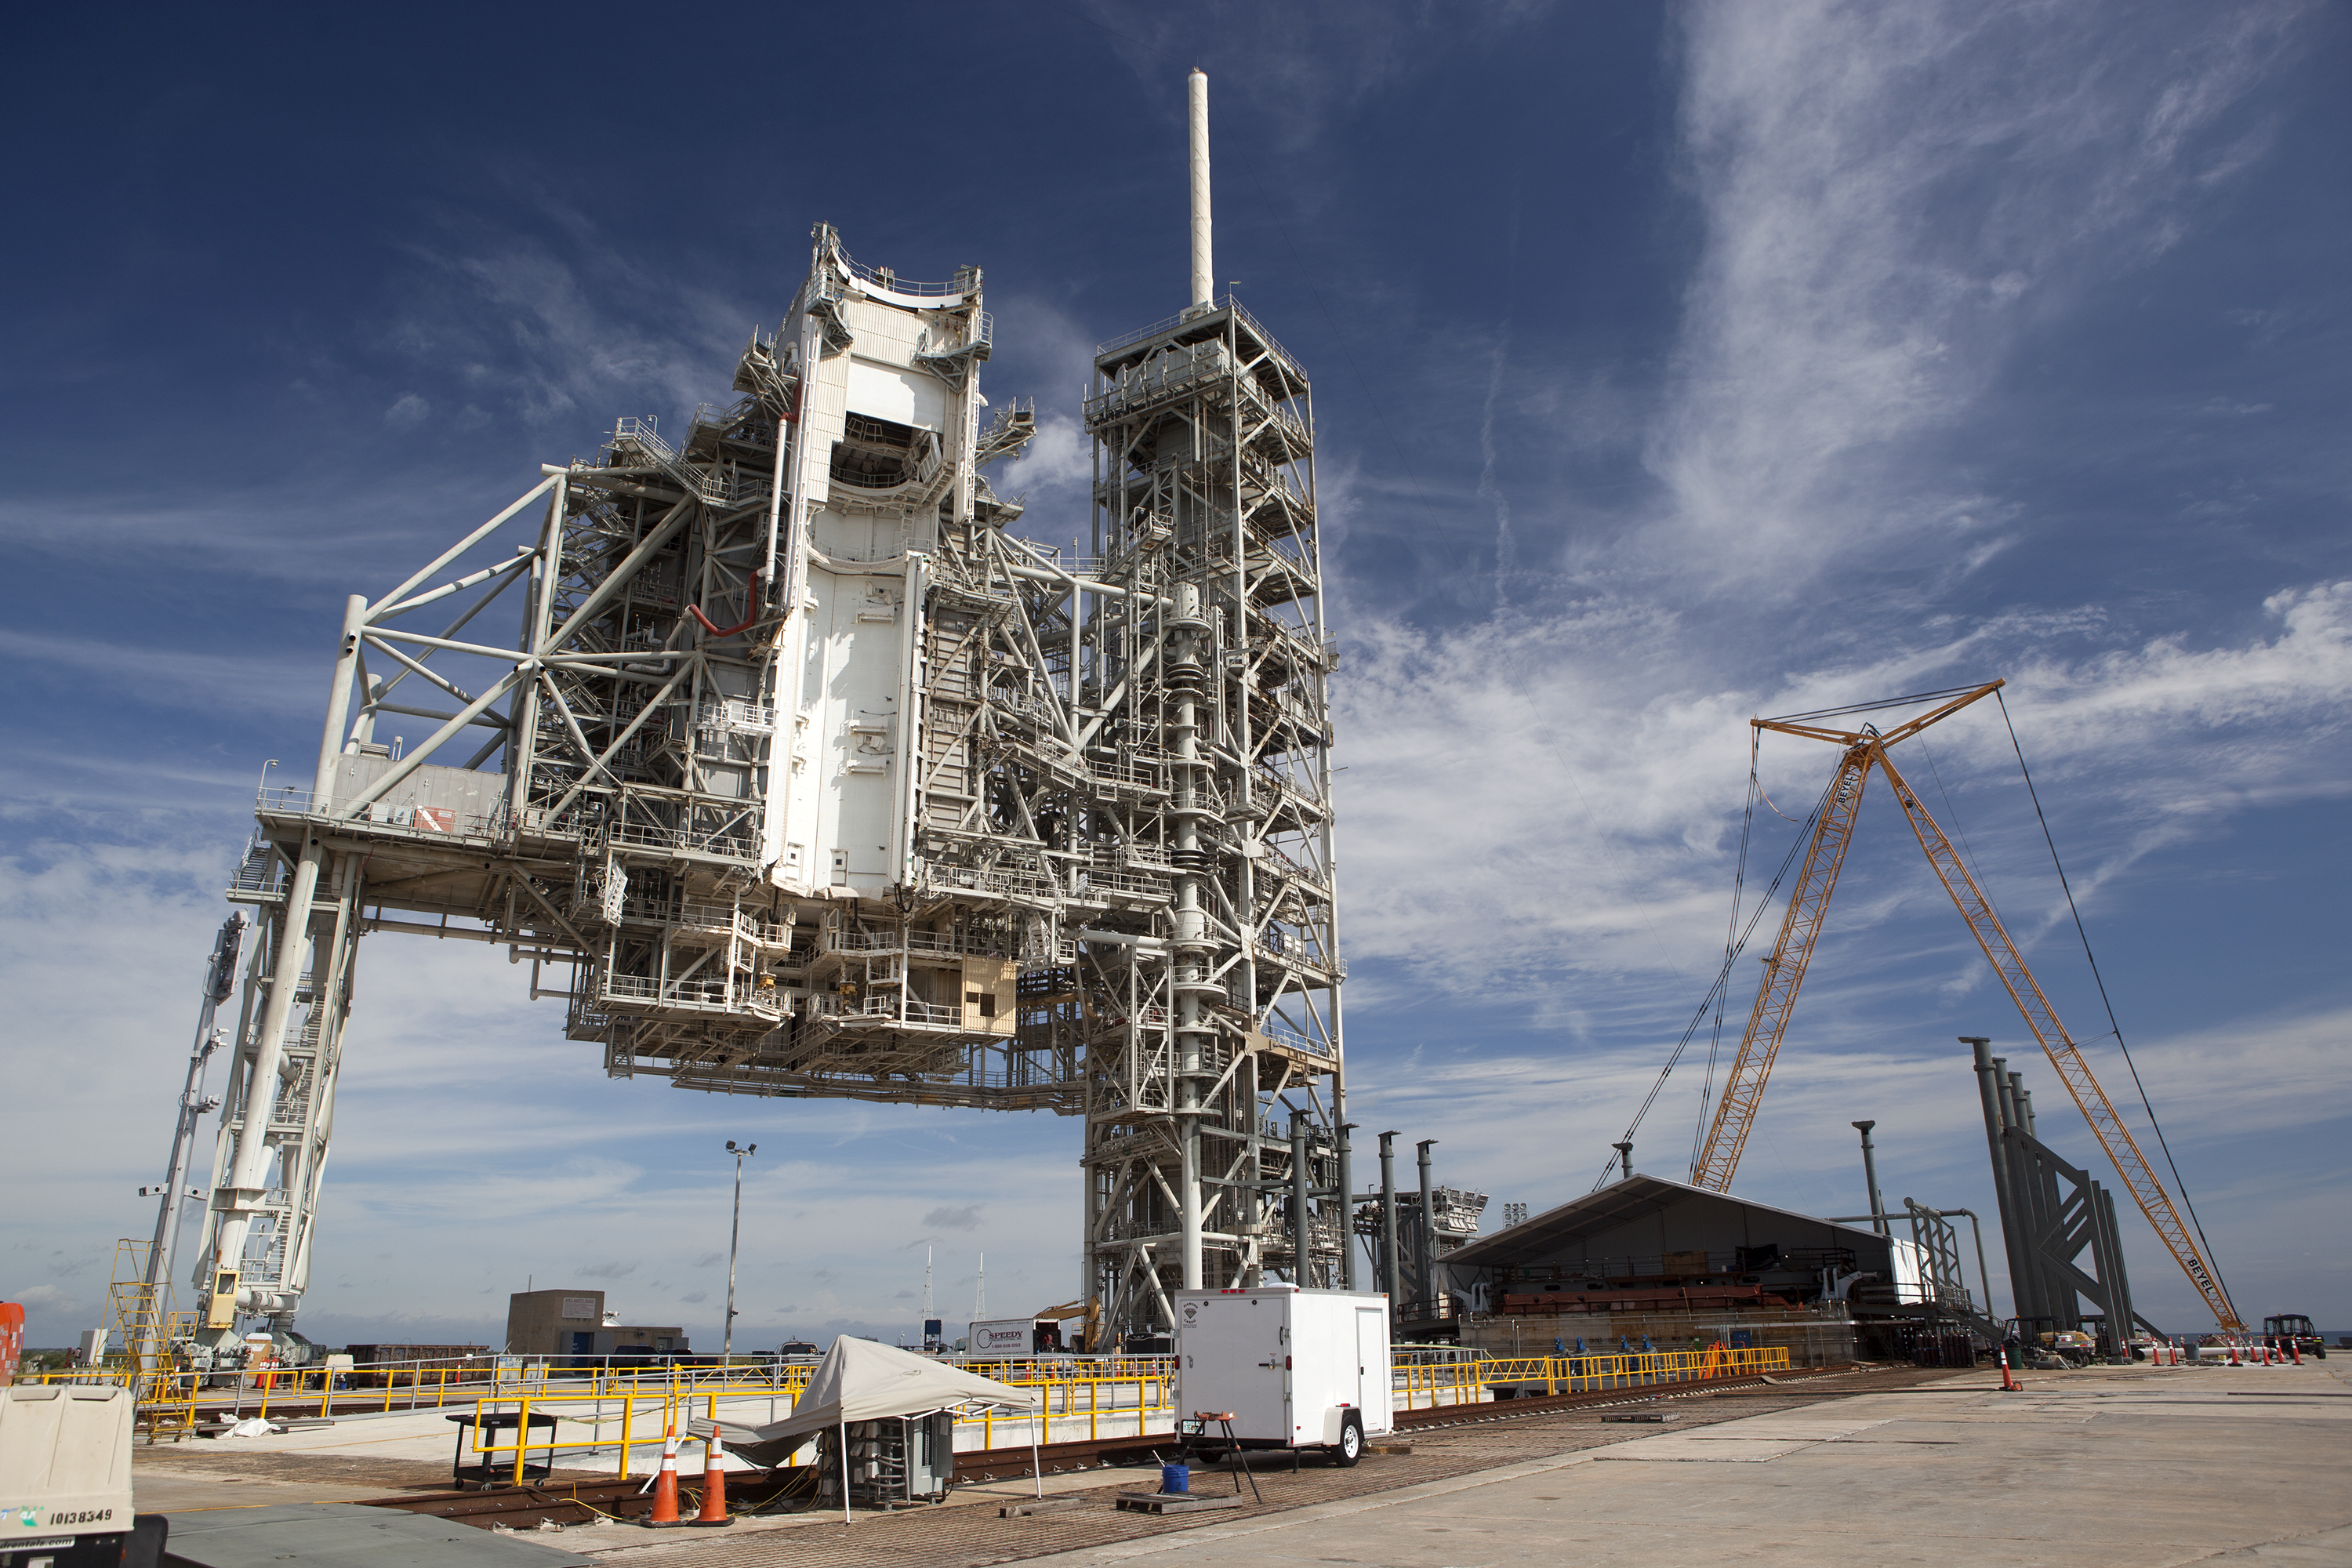 pad 39a launches graph - HD1600×1050